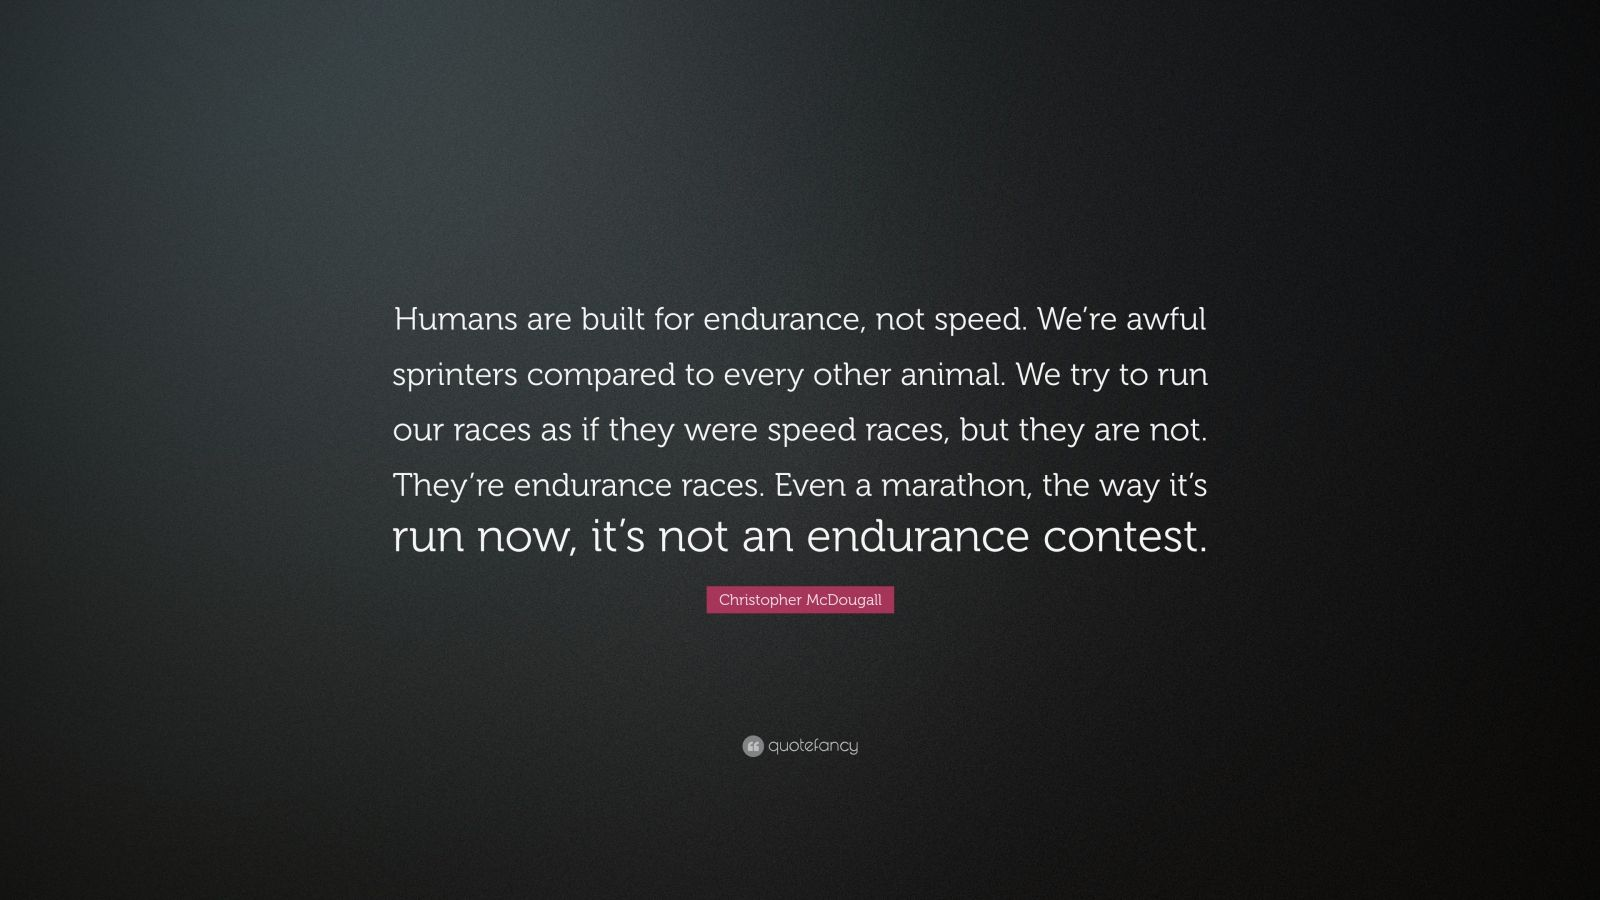 """Christopher McDougall Quote: """"Humans are built for endurance, not speed. We're awful sprinters compared to every other animal. We try to run our races as if they were speed races, but they are not. They're endurance races. Even a marathon, the way it's run now, it's not an endurance contest."""""""